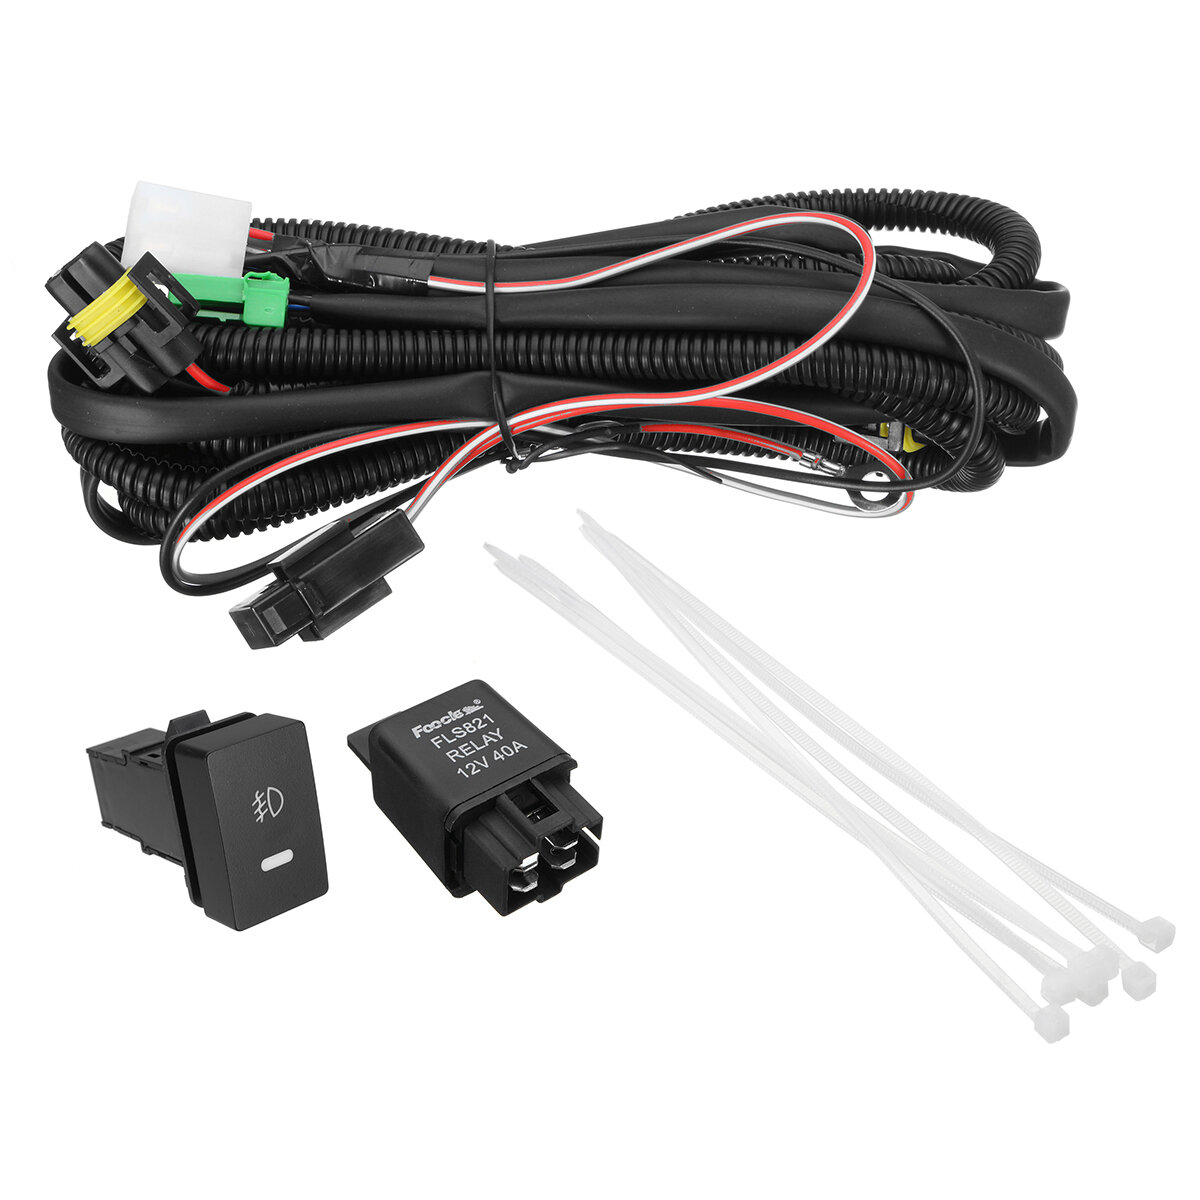 H11 Fog Light Wiring Harness Sockets Wire + LED Indicators Switch + Automotive Relay For Ford